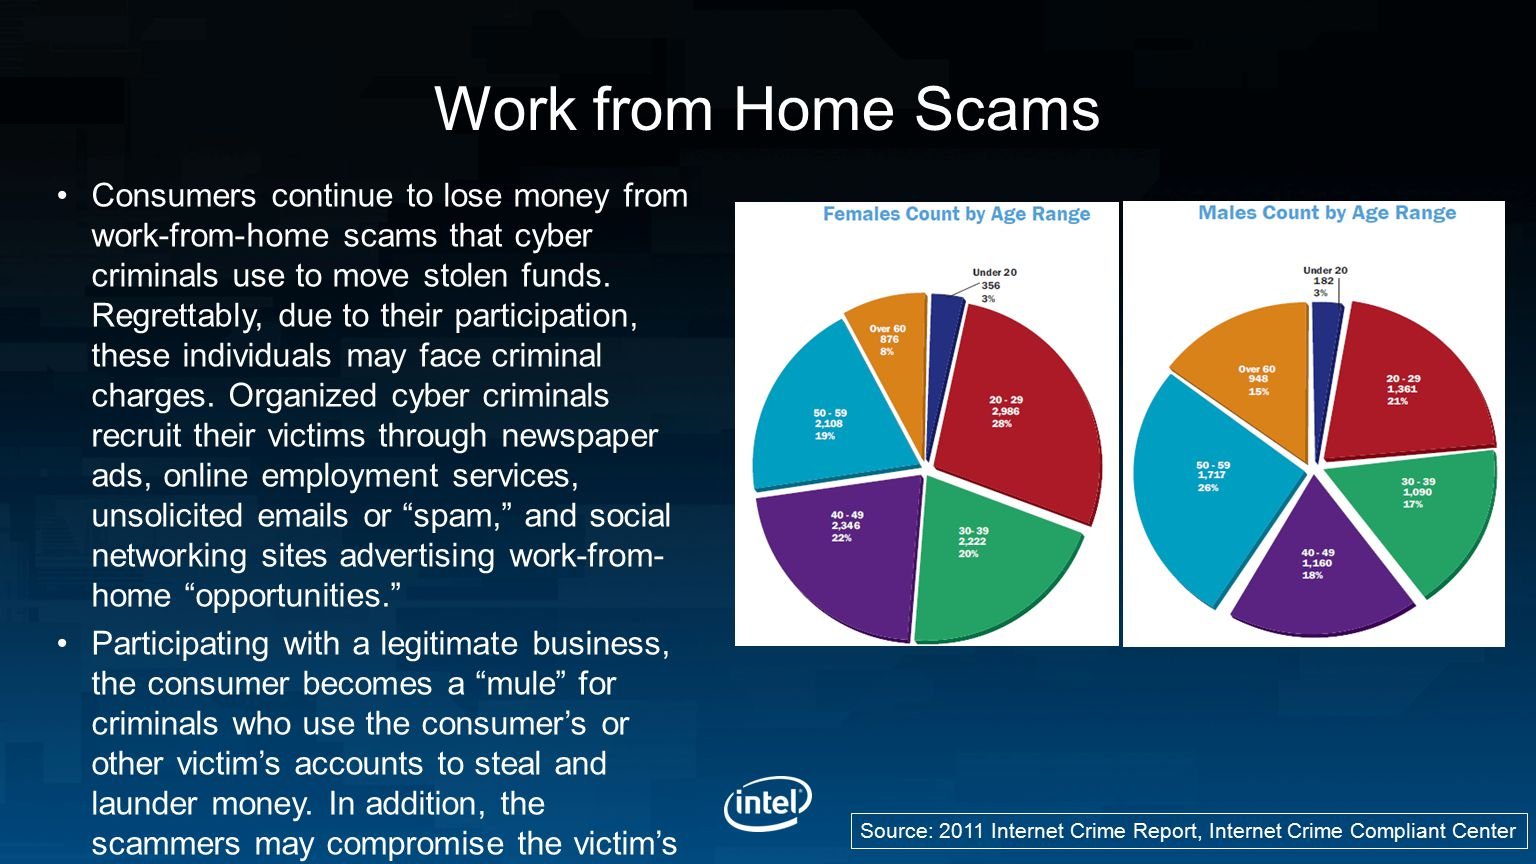 Work from Home Scams Consumers continue to lose money from work-from-home scams that cyber criminals use to move stolen funds.